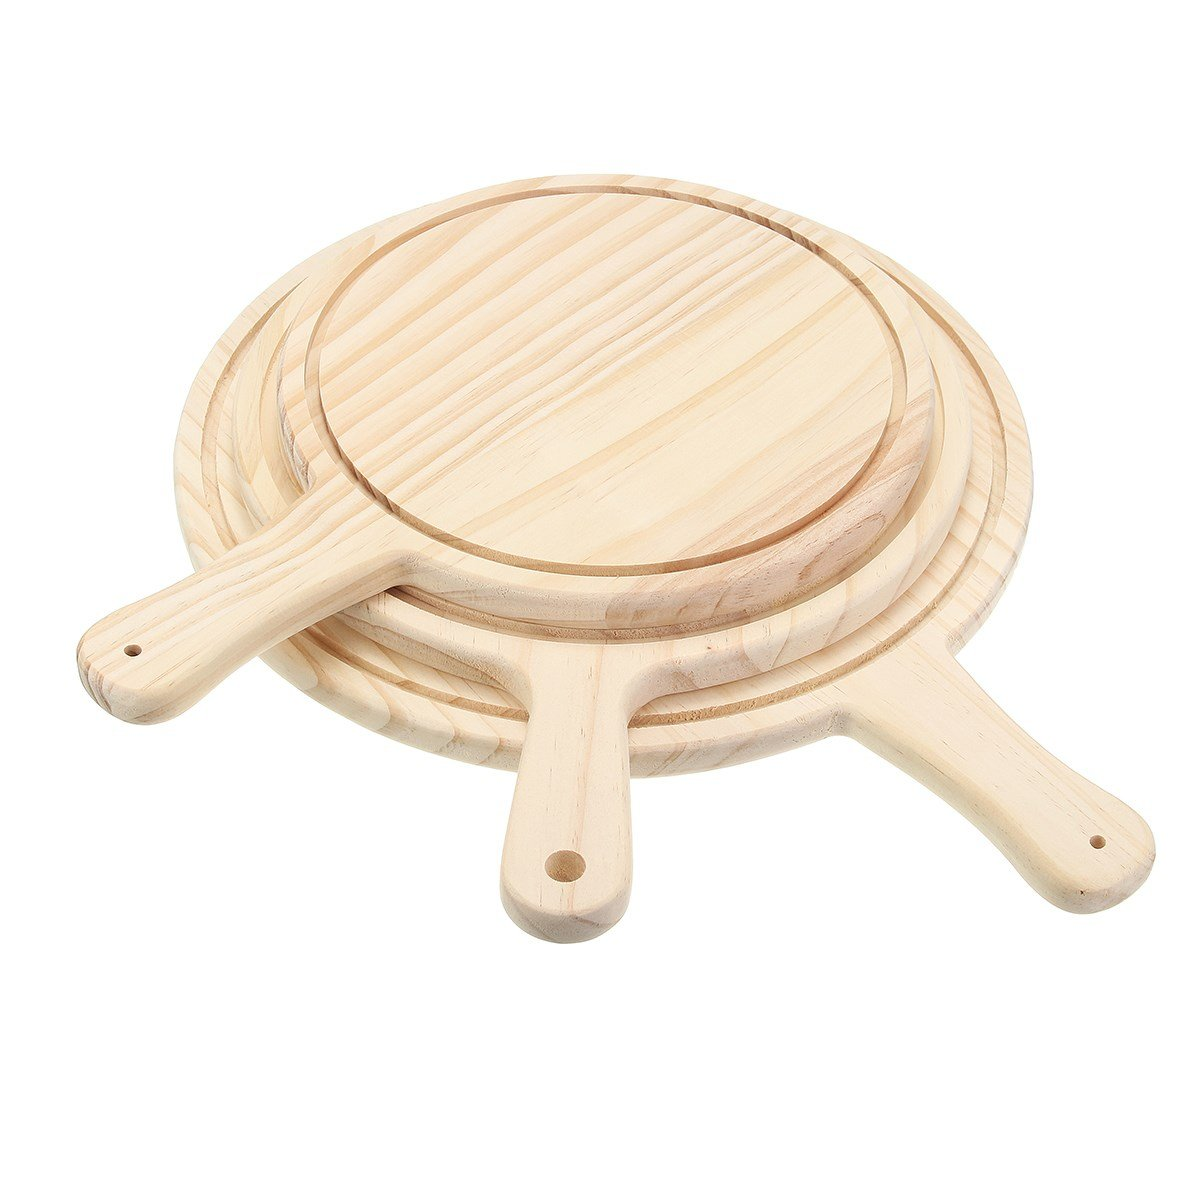 Katoot@ 8/10/12 Inch Pizza Pan Tray Wooden Paddle Peel Plate Pie Pancake Baking Cutting Stand Kitchen Tools Pizza Stones Serving Board (8 inch)